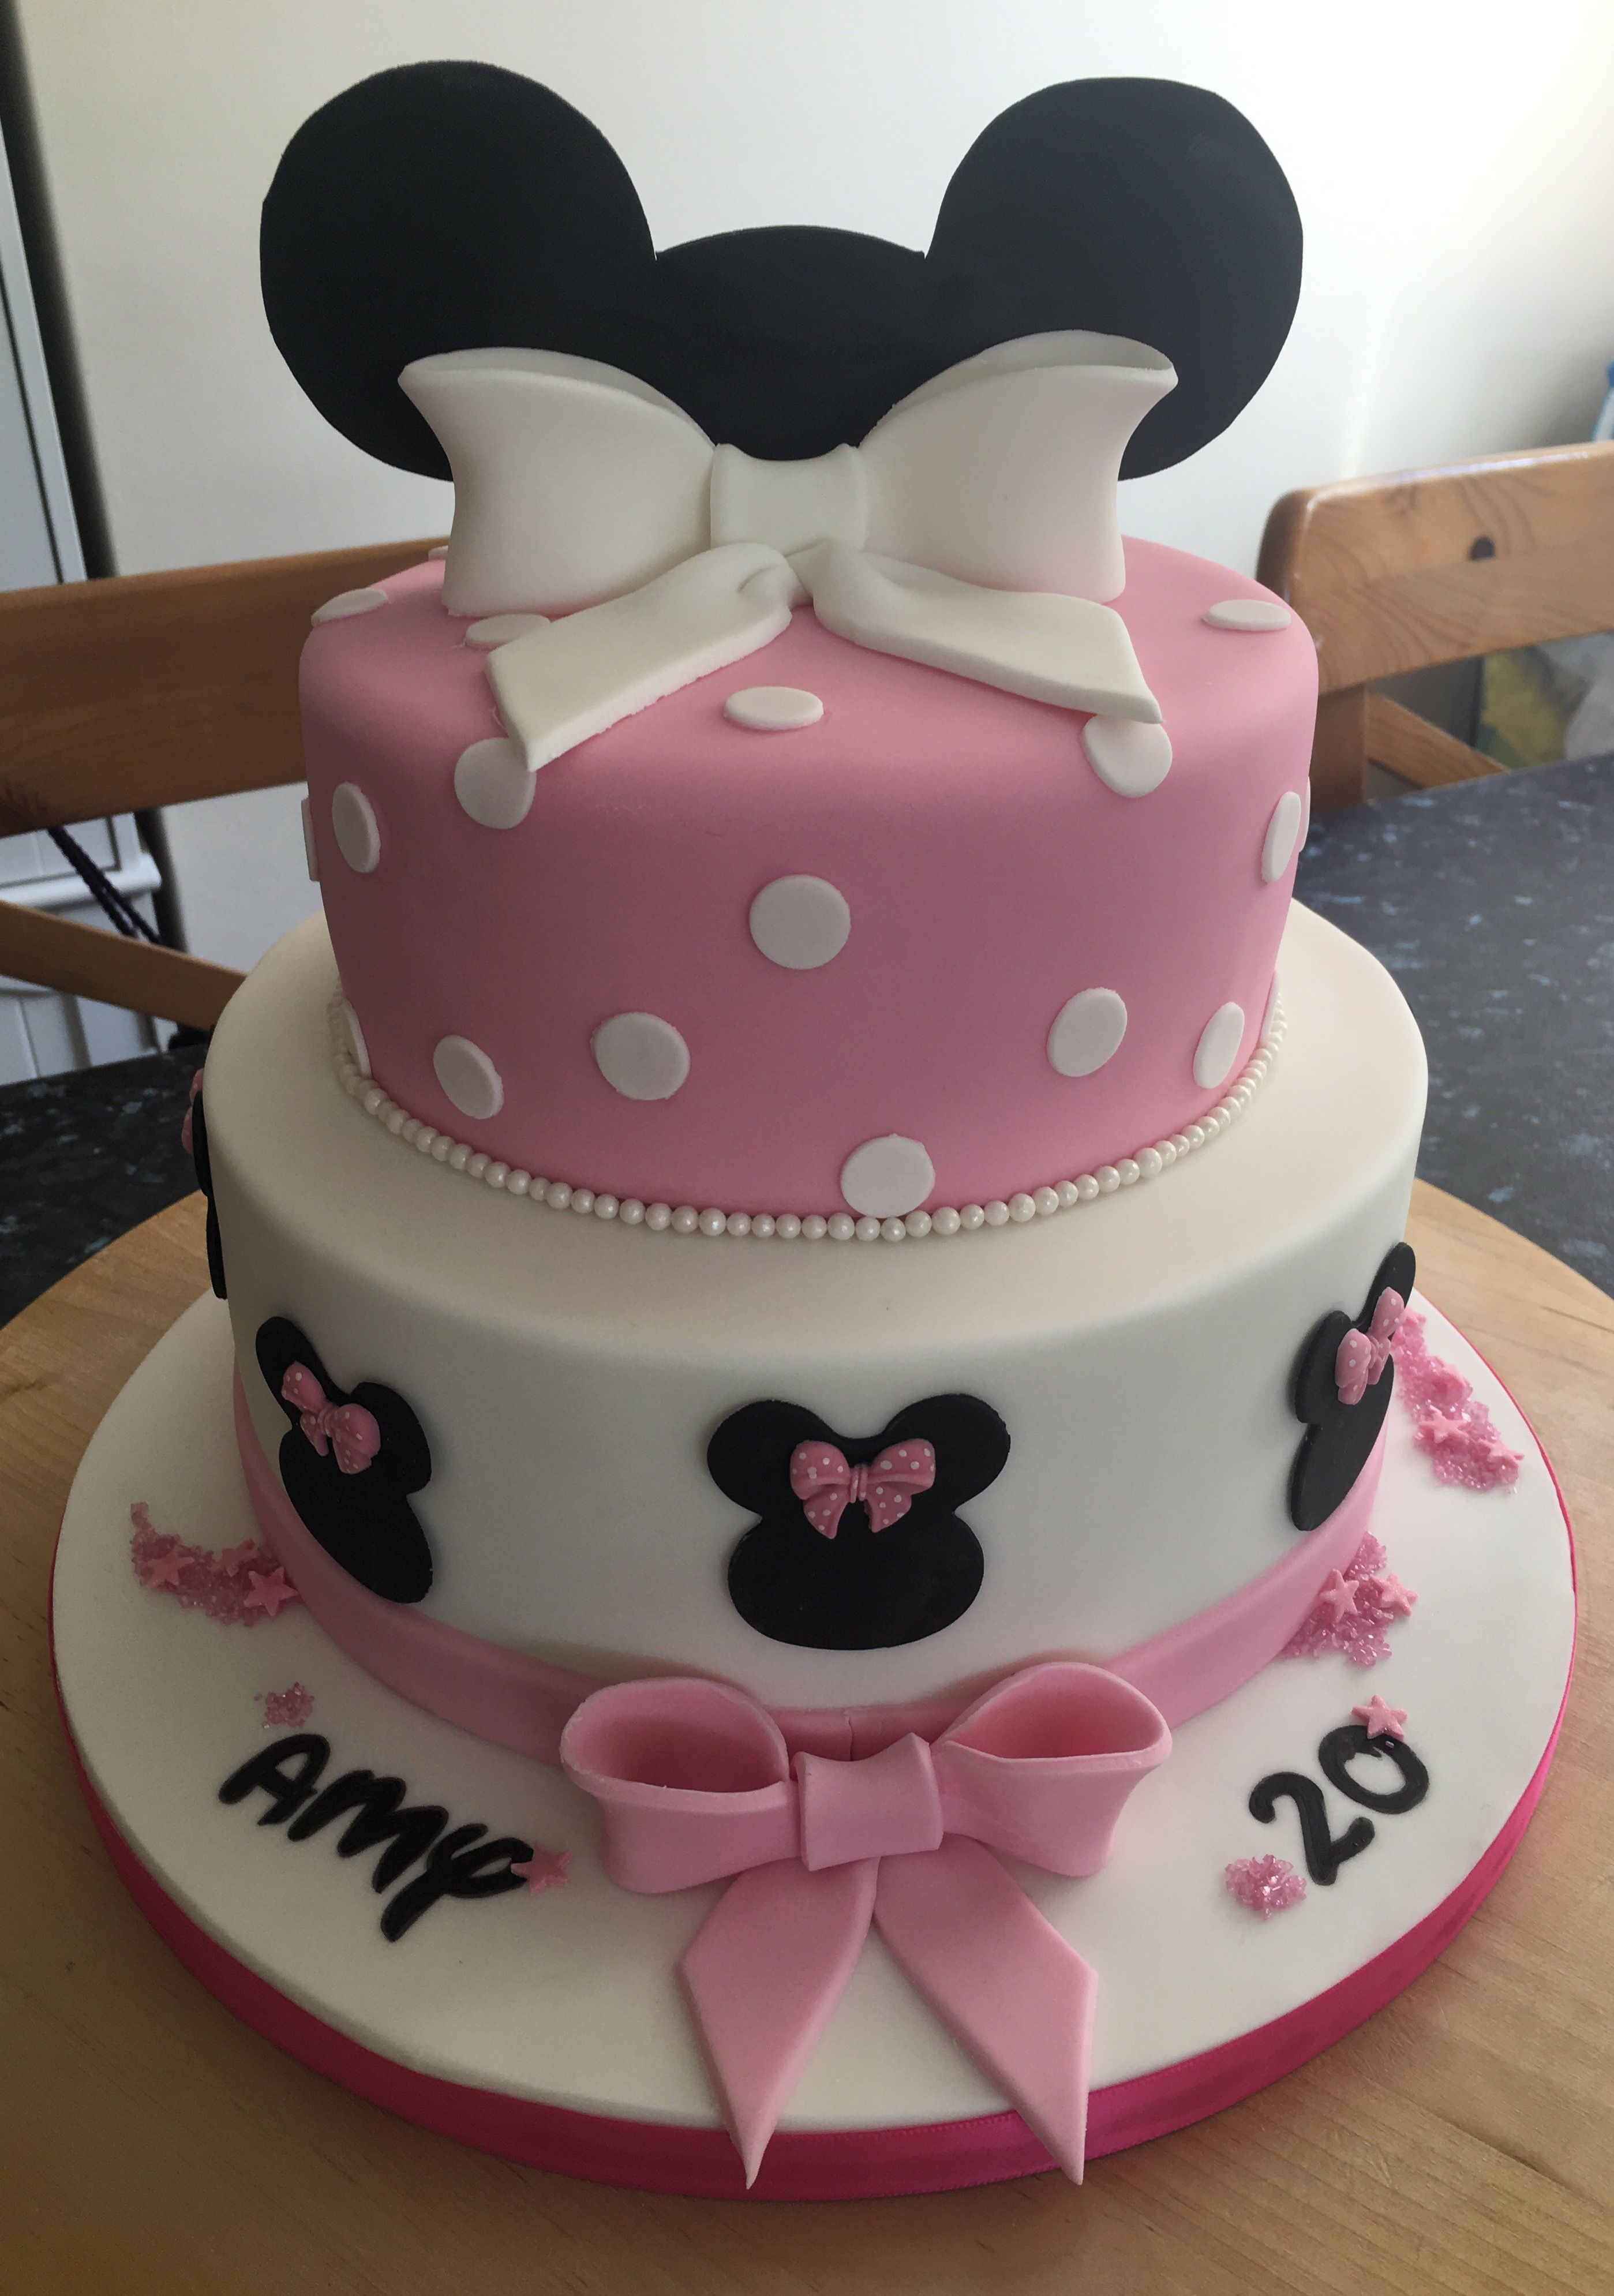 Treatz Cake Design Minnie Mouse Themed Birthday Cake Minnie Cake Minnie Mouse Cake Design Minnie Mouse Cake